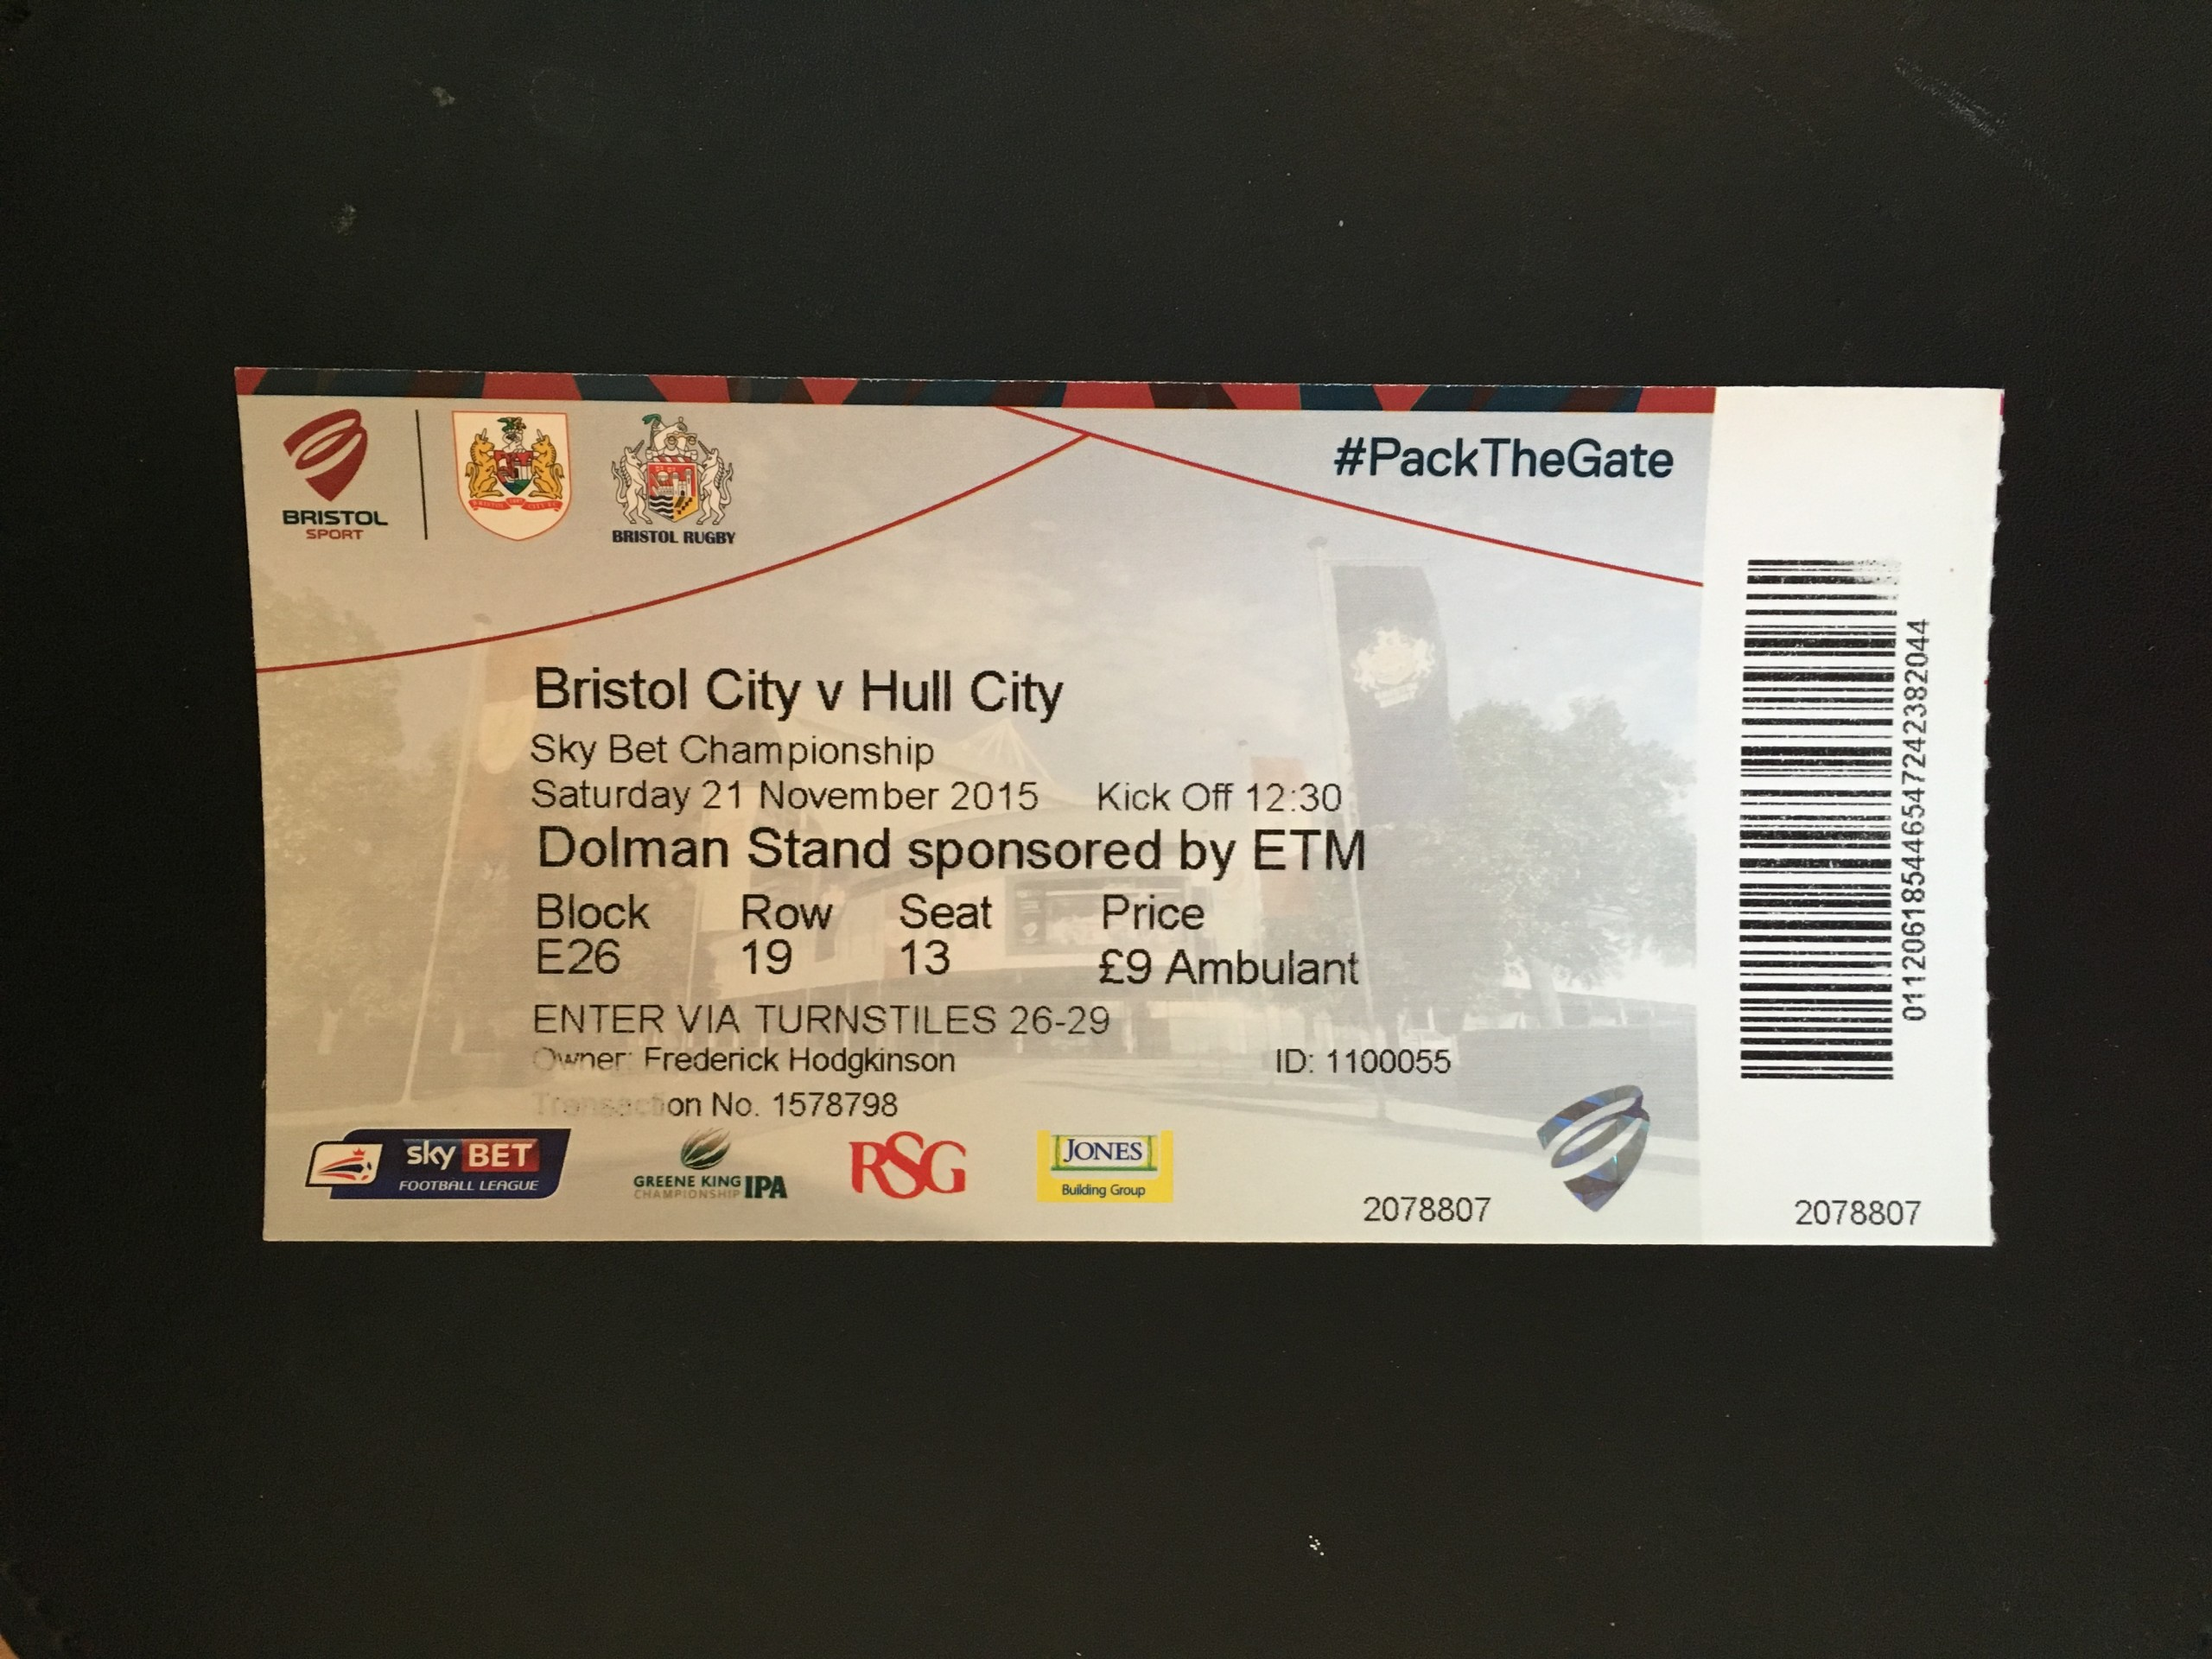 Bristol City v Hull City 21-11-2015 Ticket